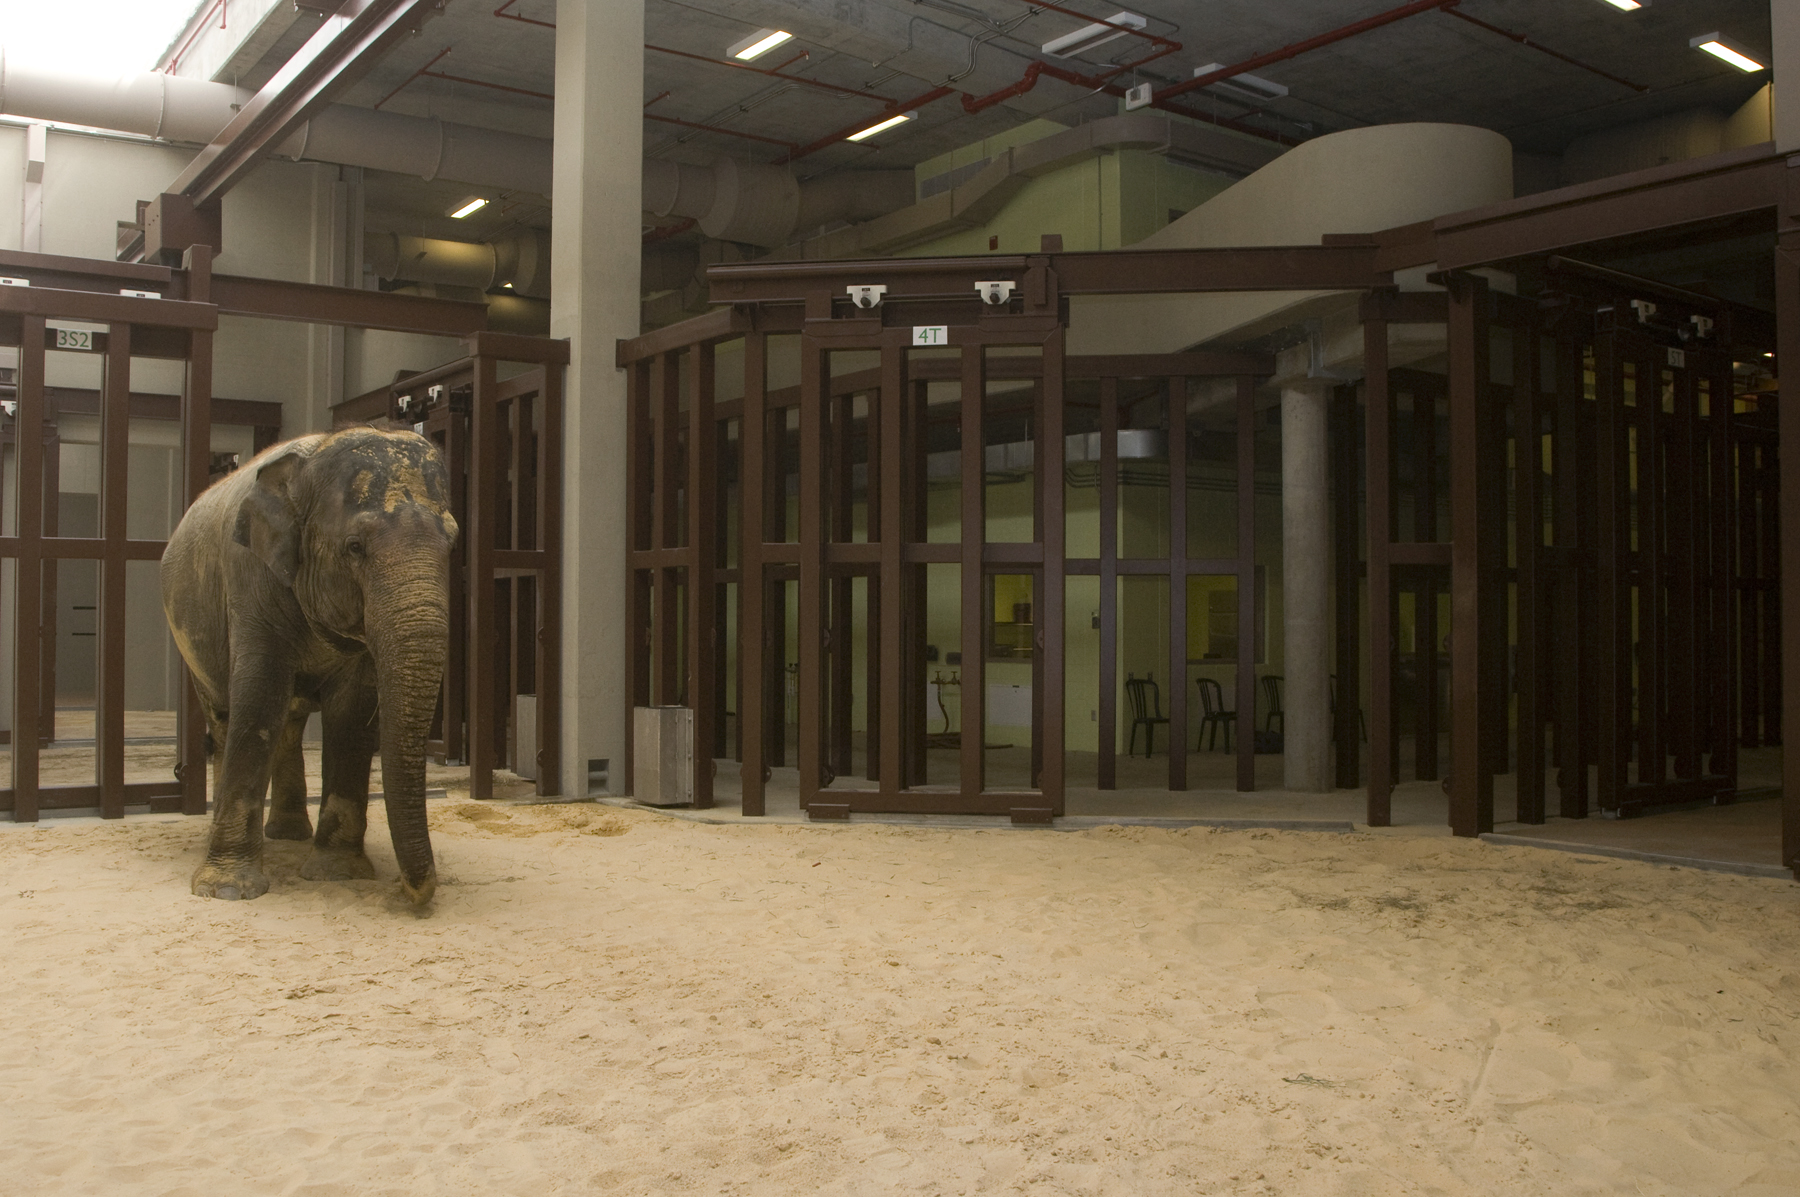 The Skylights Open And Close Automatically To Help Regulate Barn Temperature Allow For Ample Natural Light Even When Elephants Prefer Stay